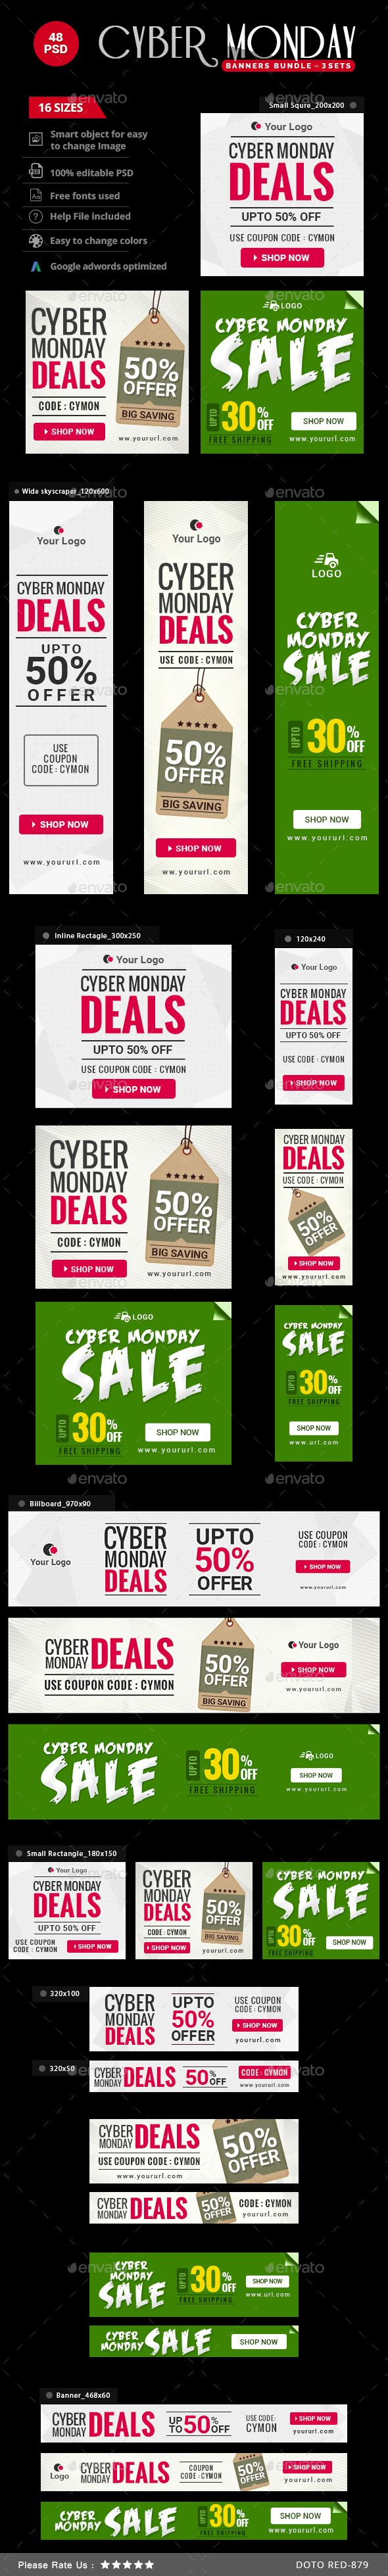 Cyber Monday Sale Web Banners Bundle - 3 Sets Templates PSD #design #ads Download: http://graphicriver.net/item/cyber-monday-sale-banners-bundle-3-sets/13841998?ref=ksioks